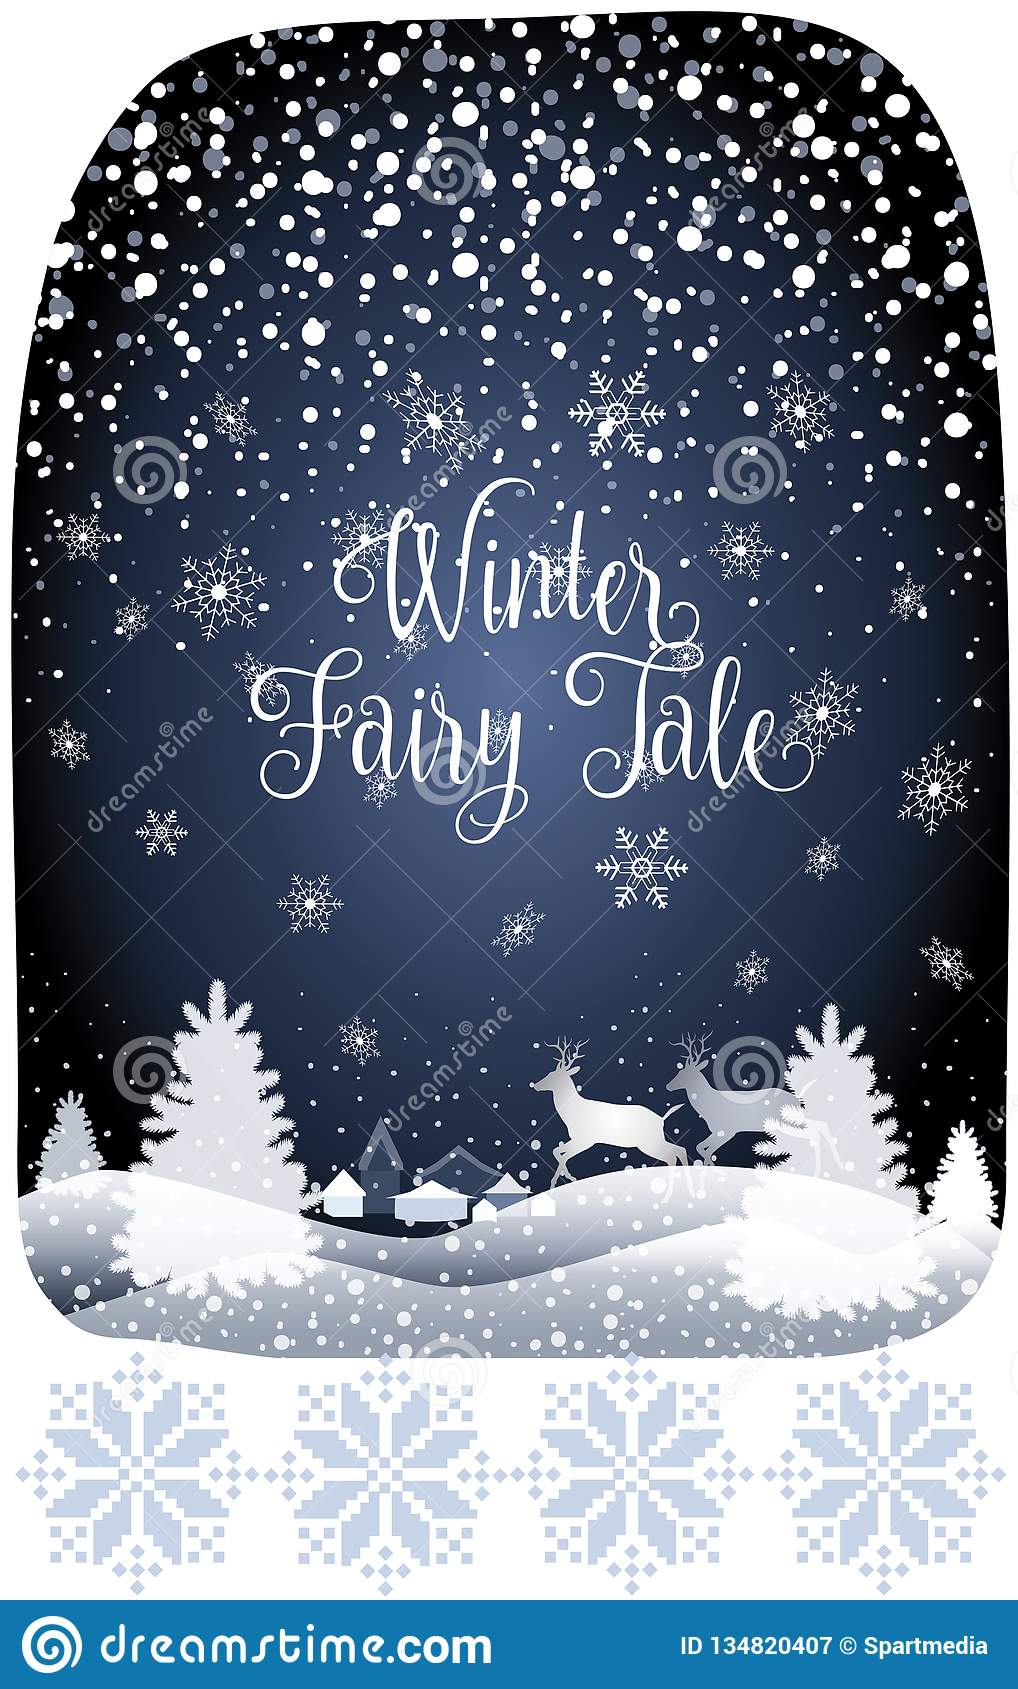 2019 Winter Fairy Tale Holiday Happy New Year Merry Christmas Snowy Forest Landscape with reindeer